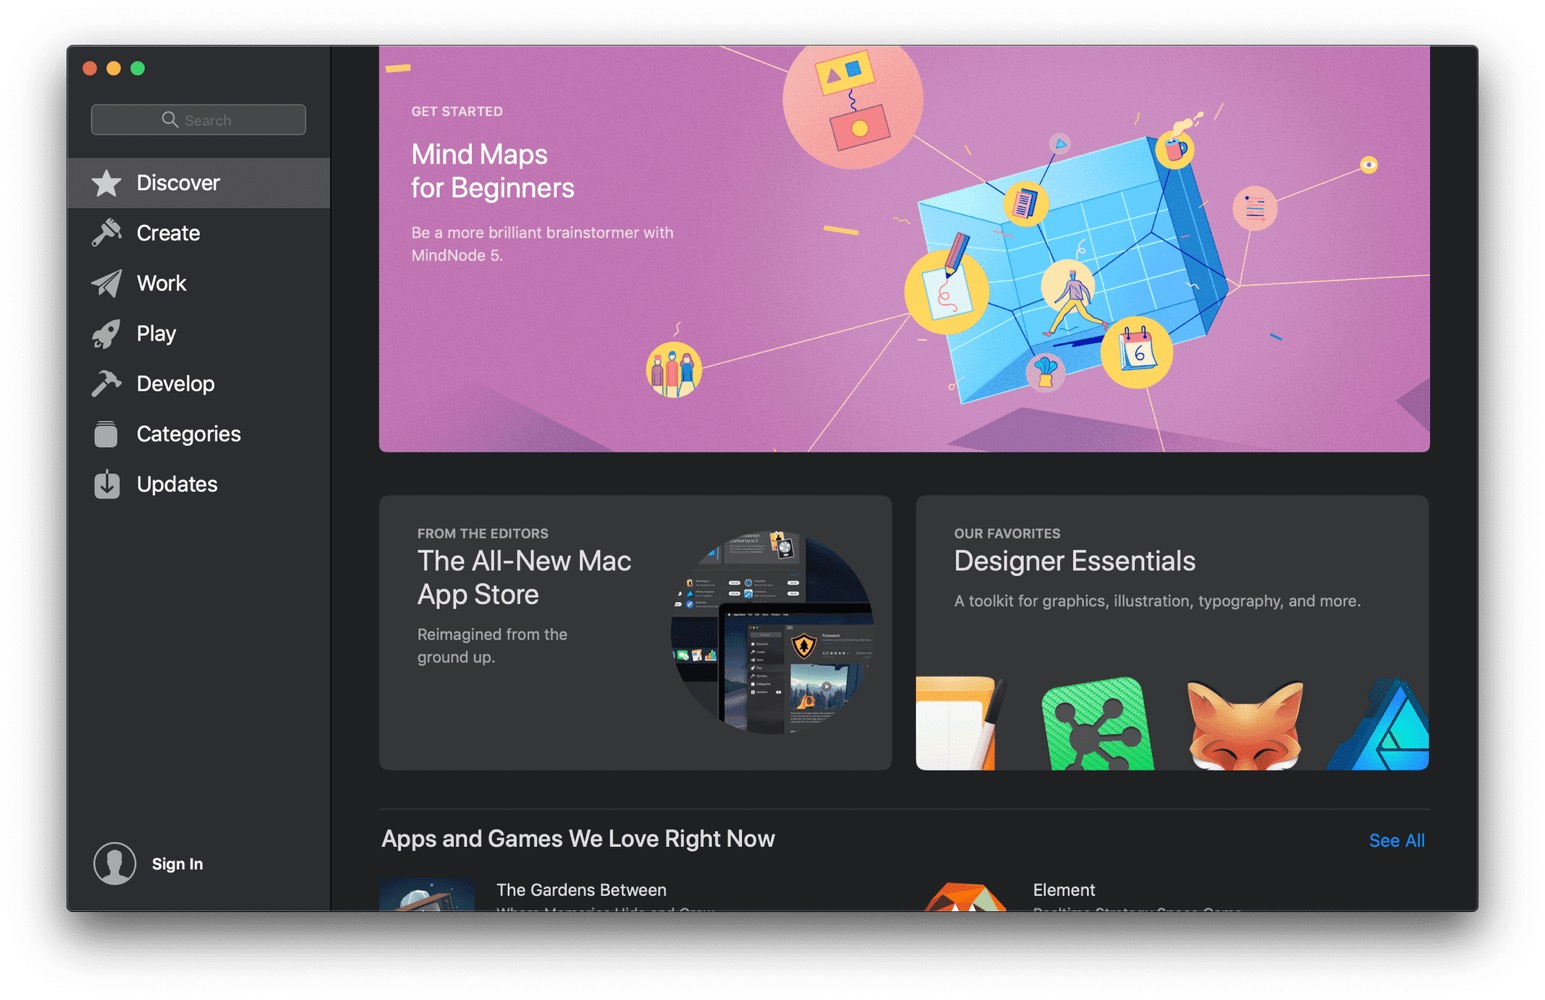 A First Look at the New Mac App Store in macOS Mojave